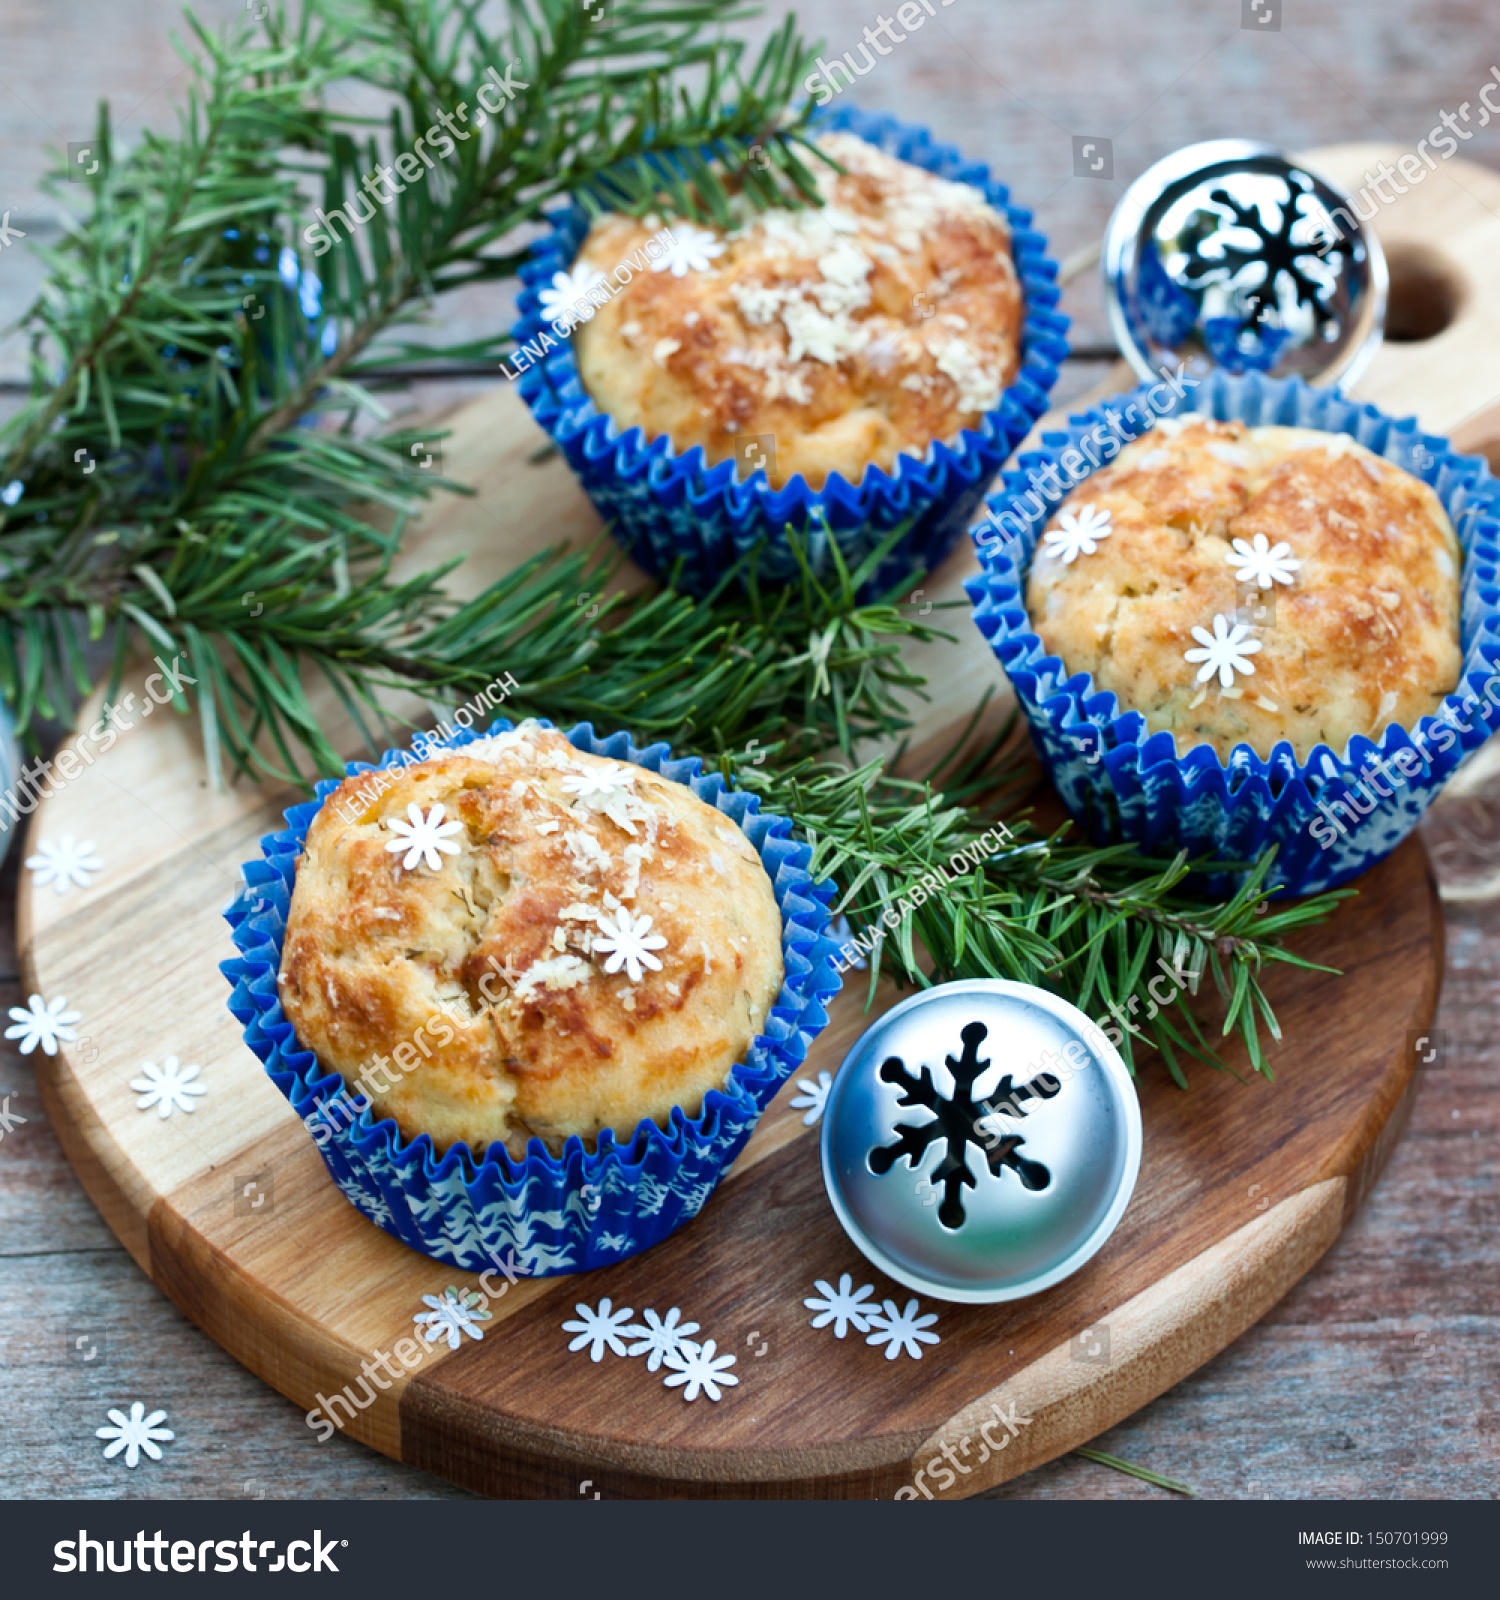 Christmas Tree Muffins: Muffins With Blue Snowflakes Cup With Christmas Tree And